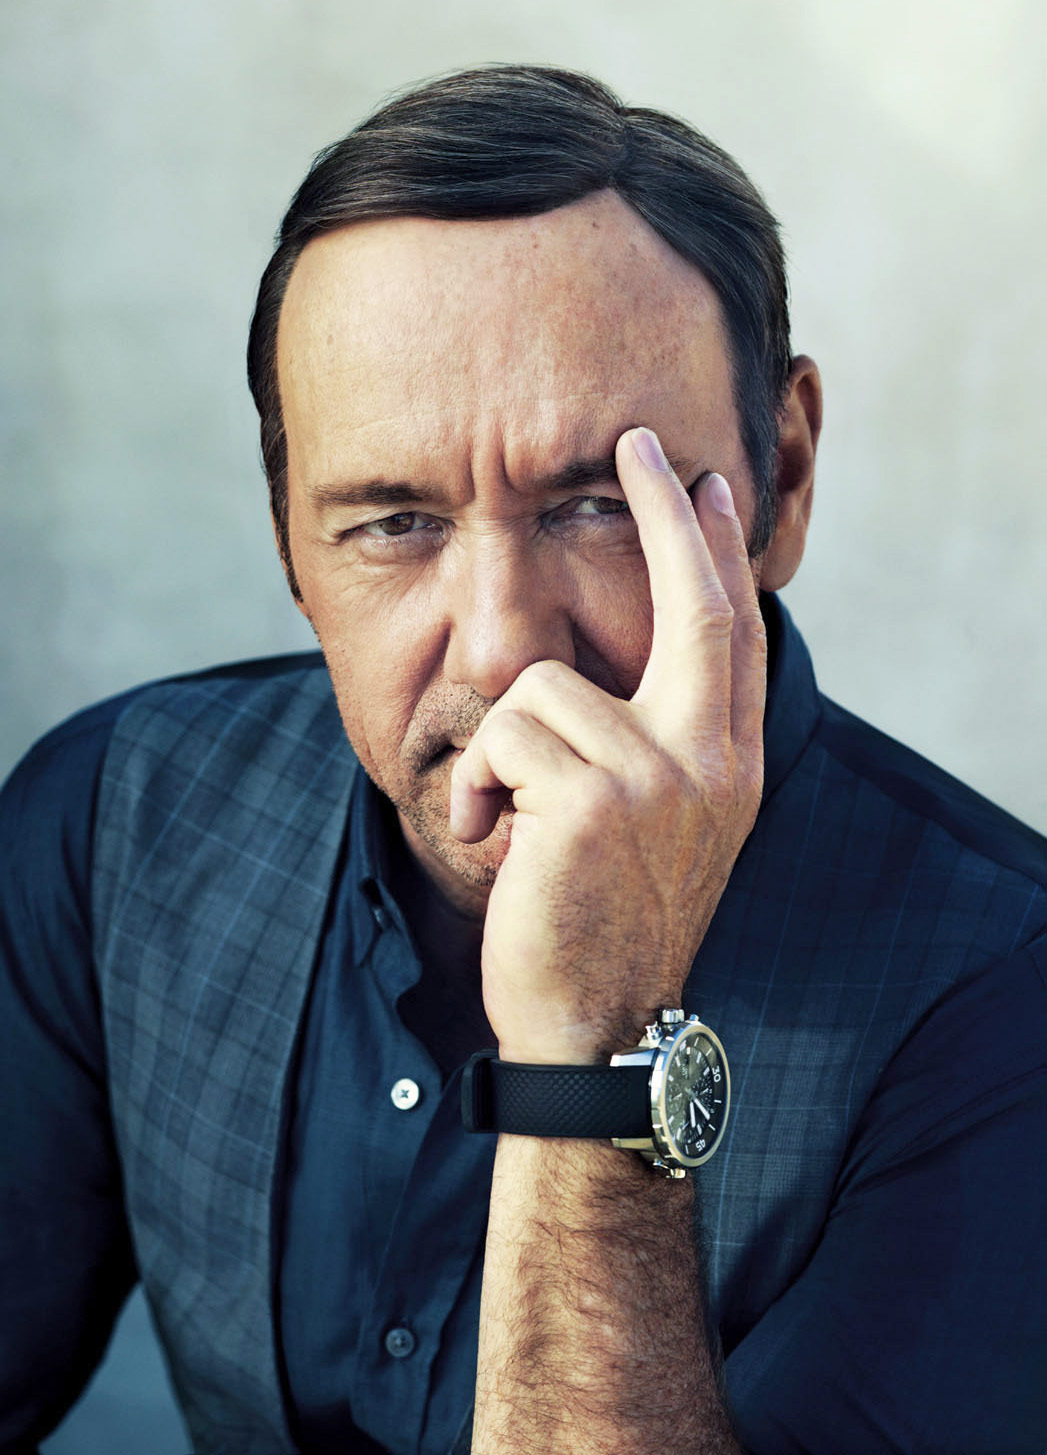 Massagista processa Kevin Spacey por assédio sexual